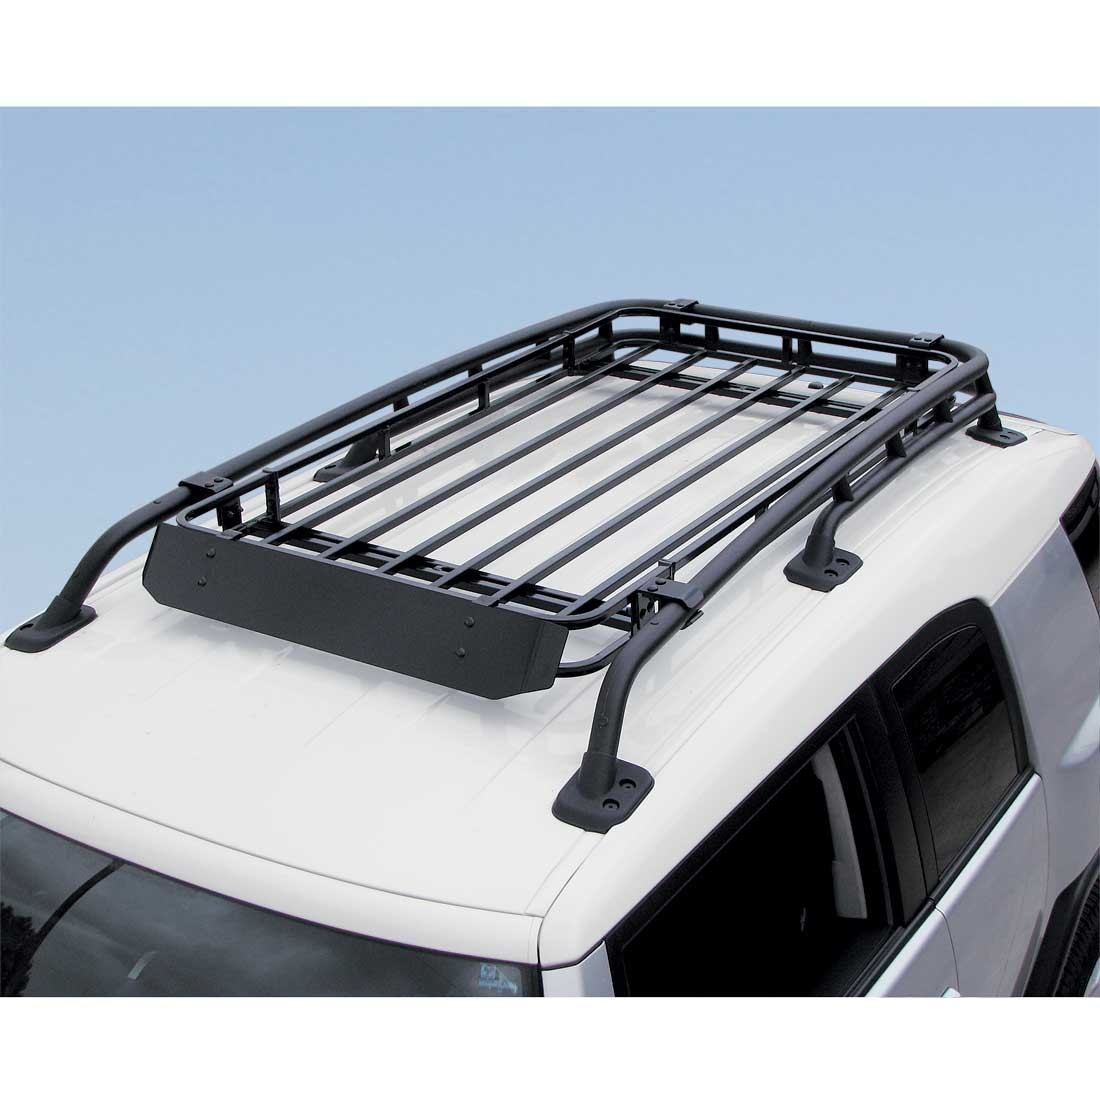 Garvin Industries Pure Fj Cruiser Accessories Parts And